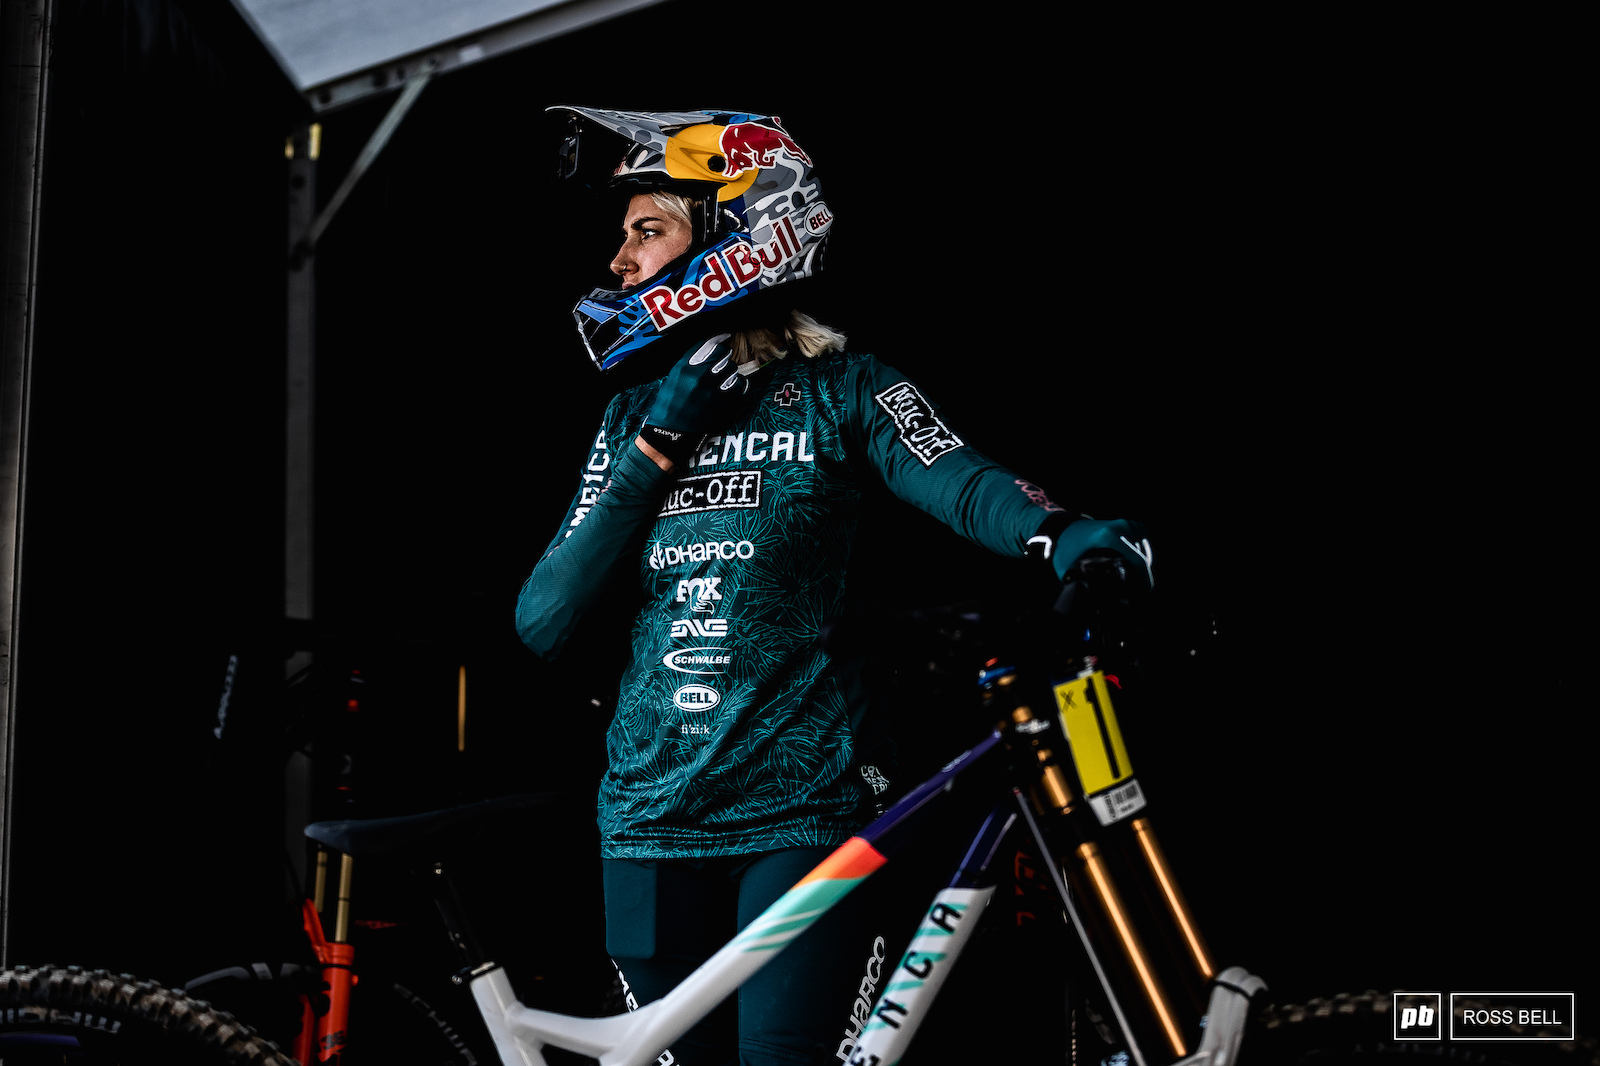 Myriam Nicole heads back into the pits after her first few practice runs early this morning.